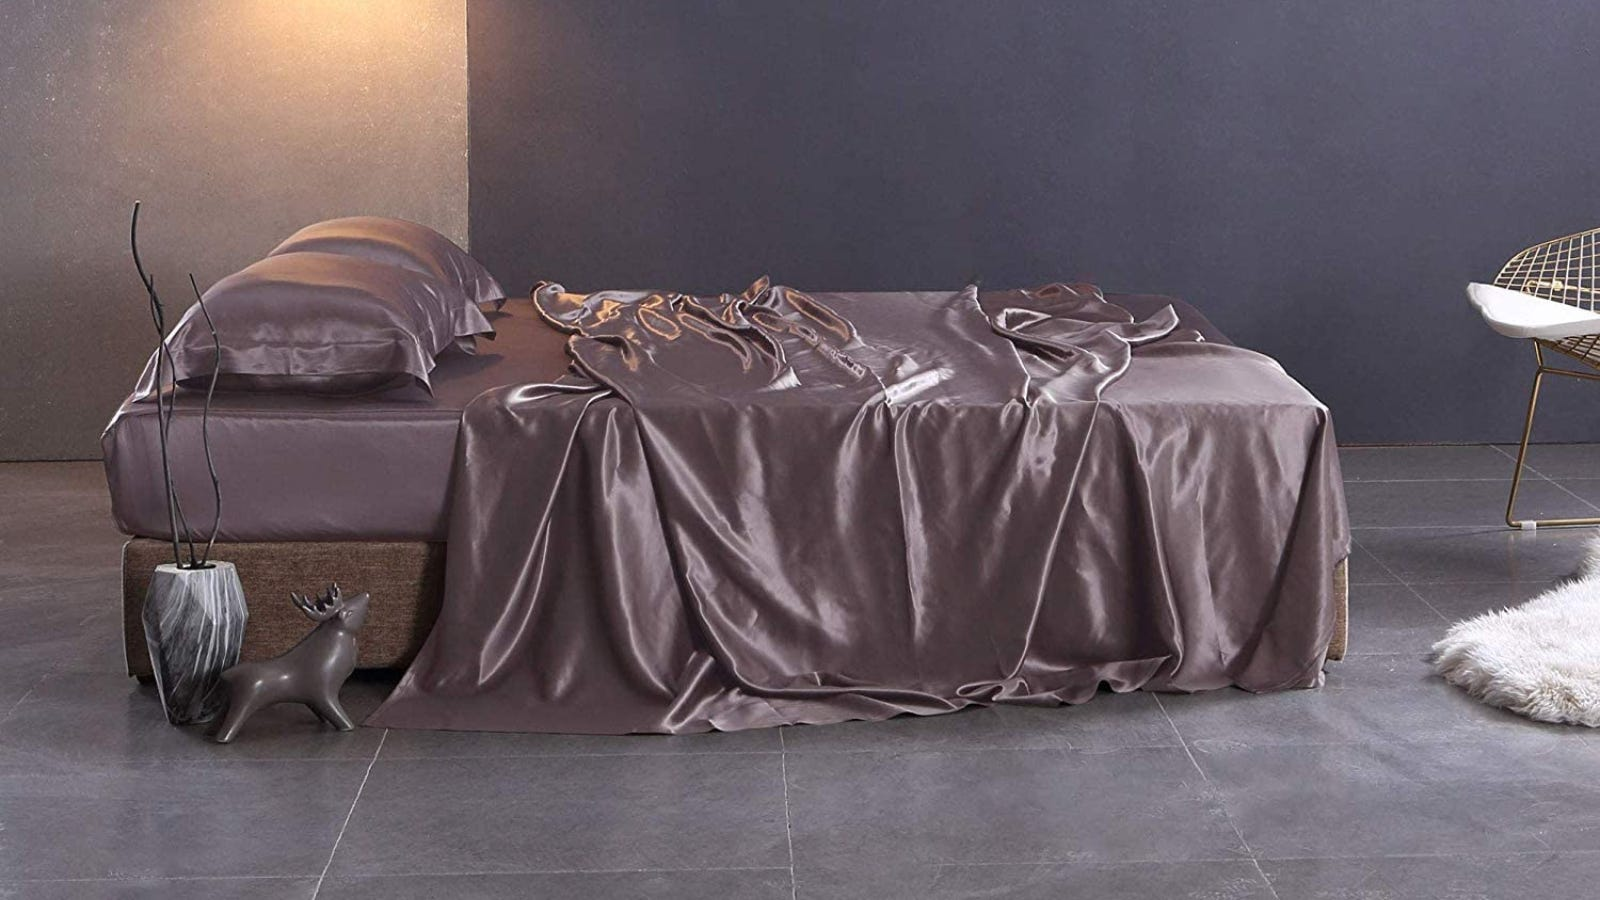 A bed with dark purple silk sheets and matching pillows sitting in a dark room.